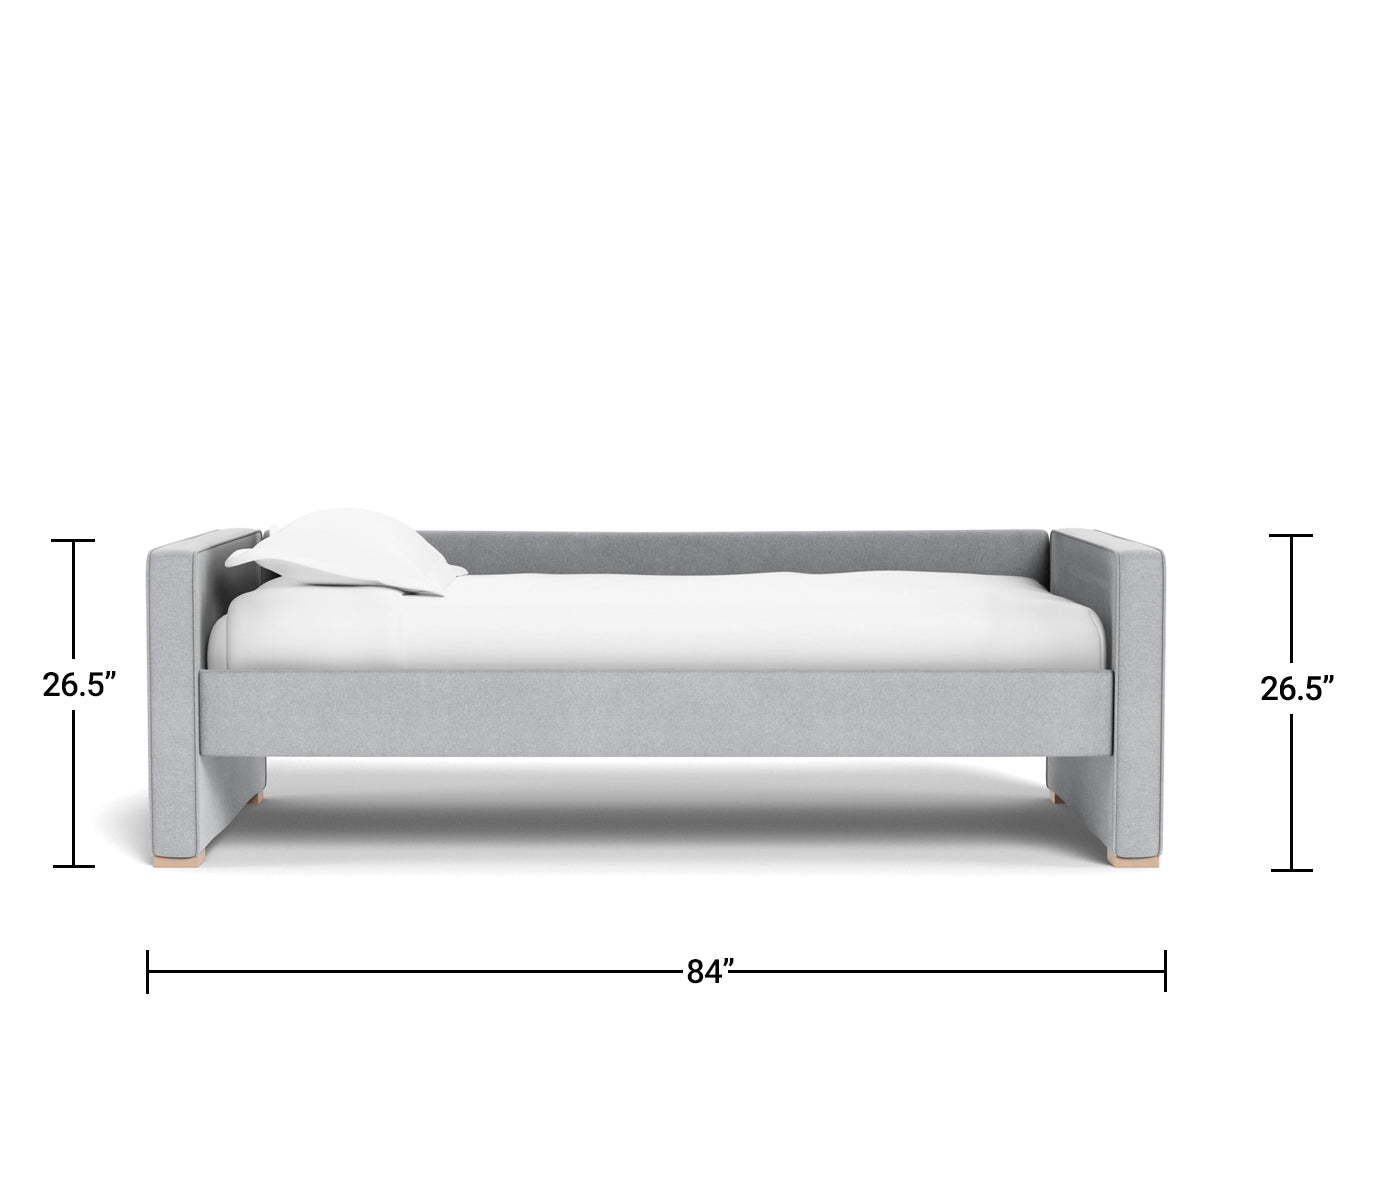 Twin Daybed Dimensions